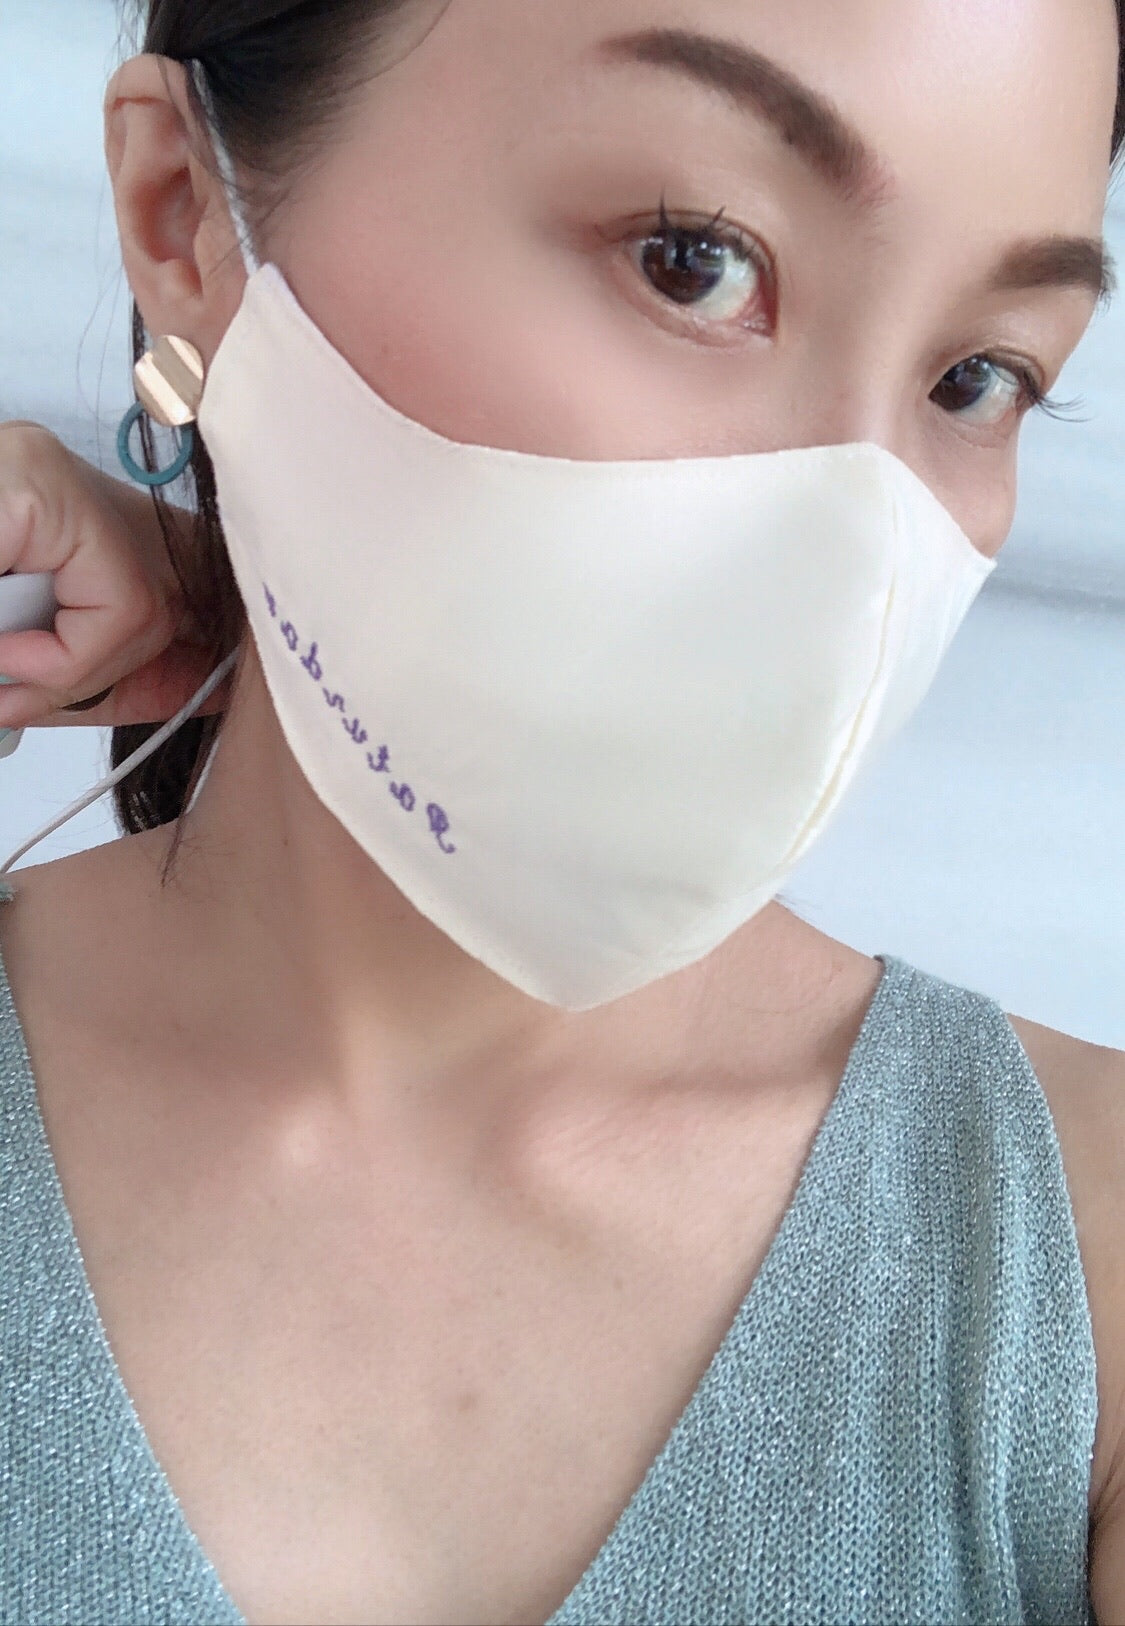 (Preorders) MEW SLING 3D Face Mask With name Embroidery - COTTON Fabric